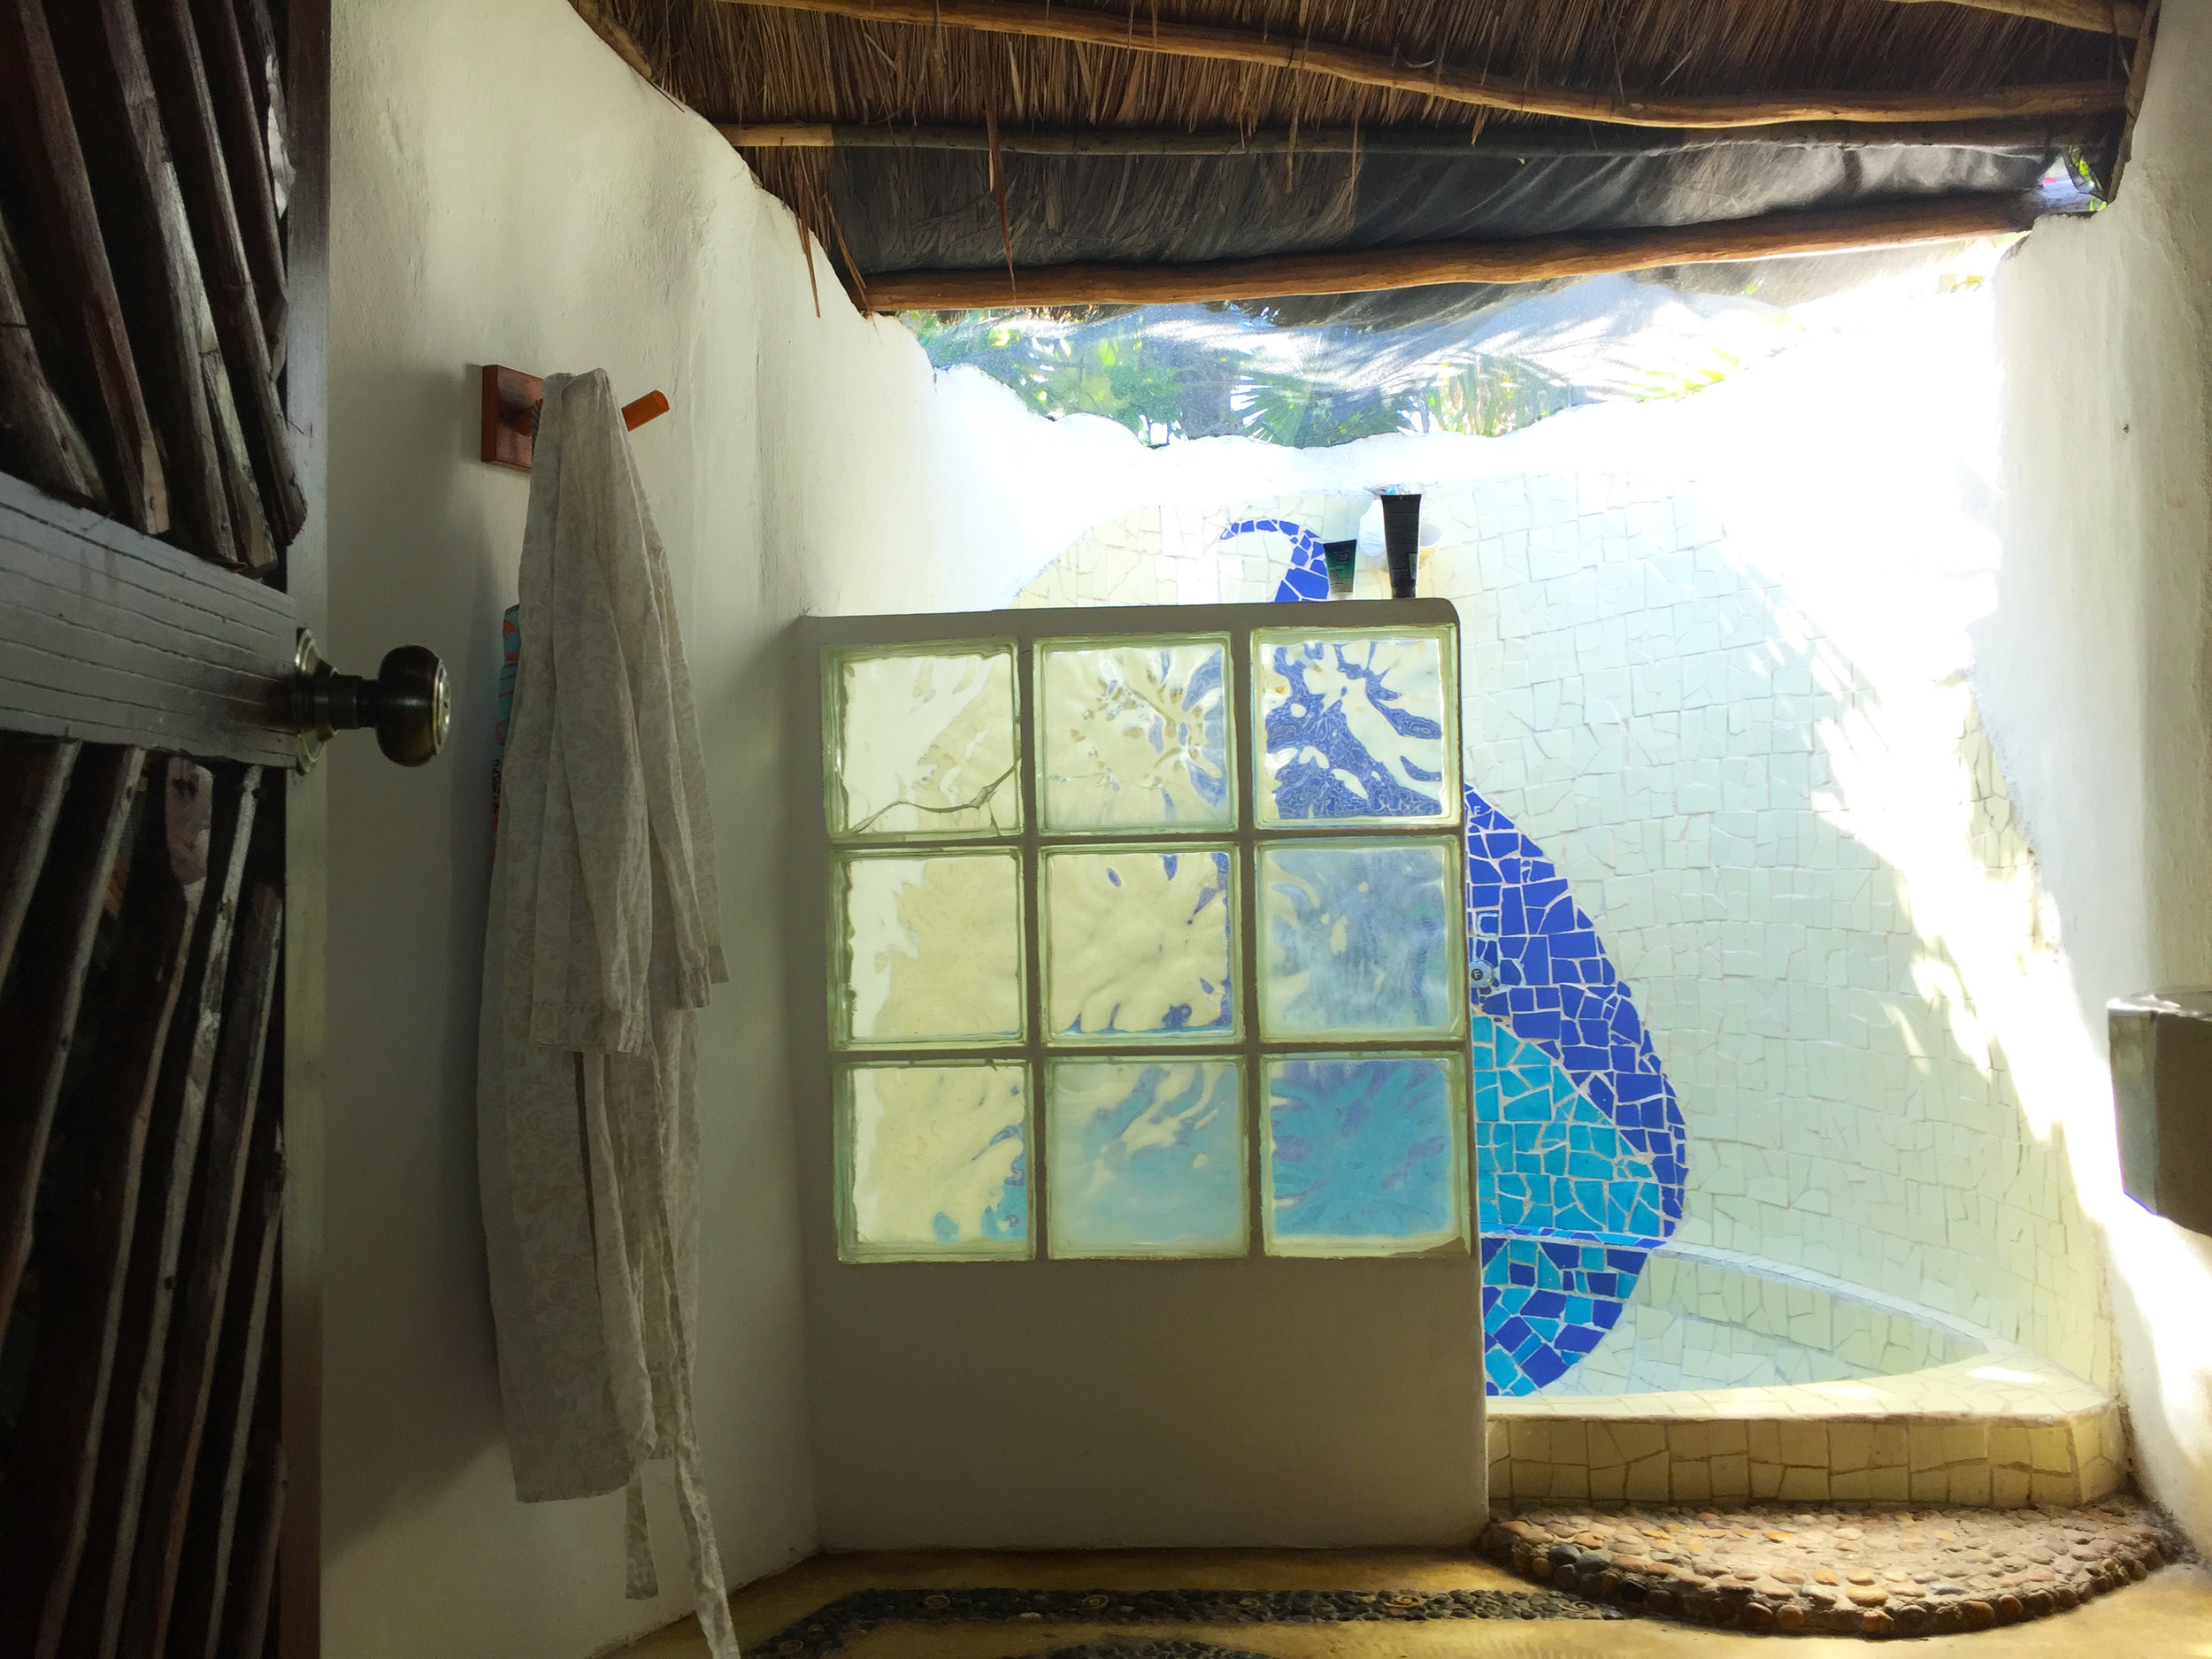 This was the shower. And yes, that is a screen to the open air above.